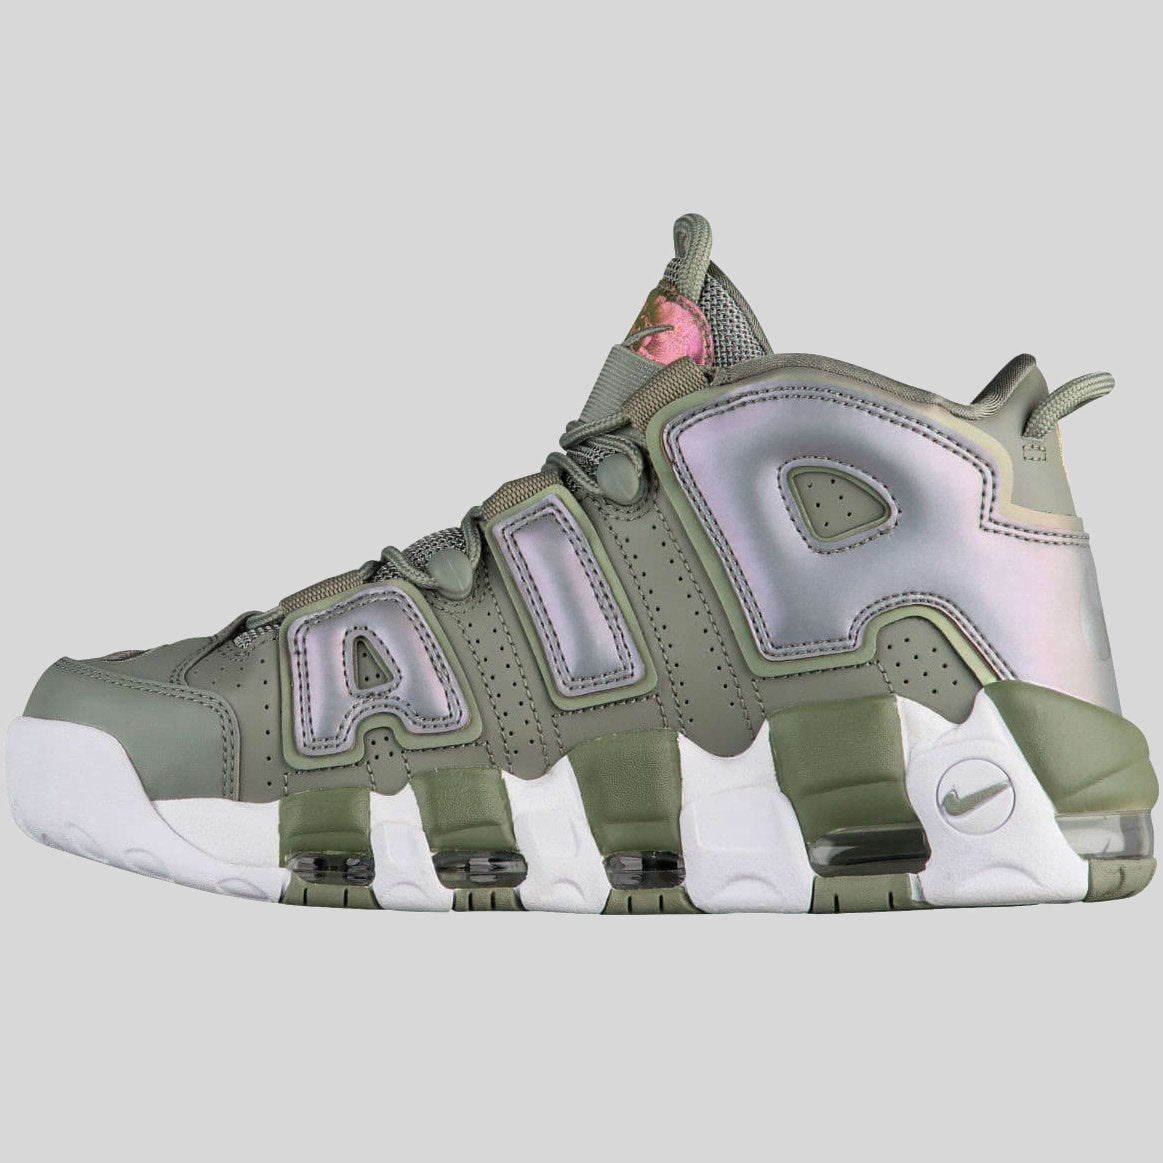 64a2cd0f6228 Nike Wmns Air More Uptempo Barely Green White (917593-300)